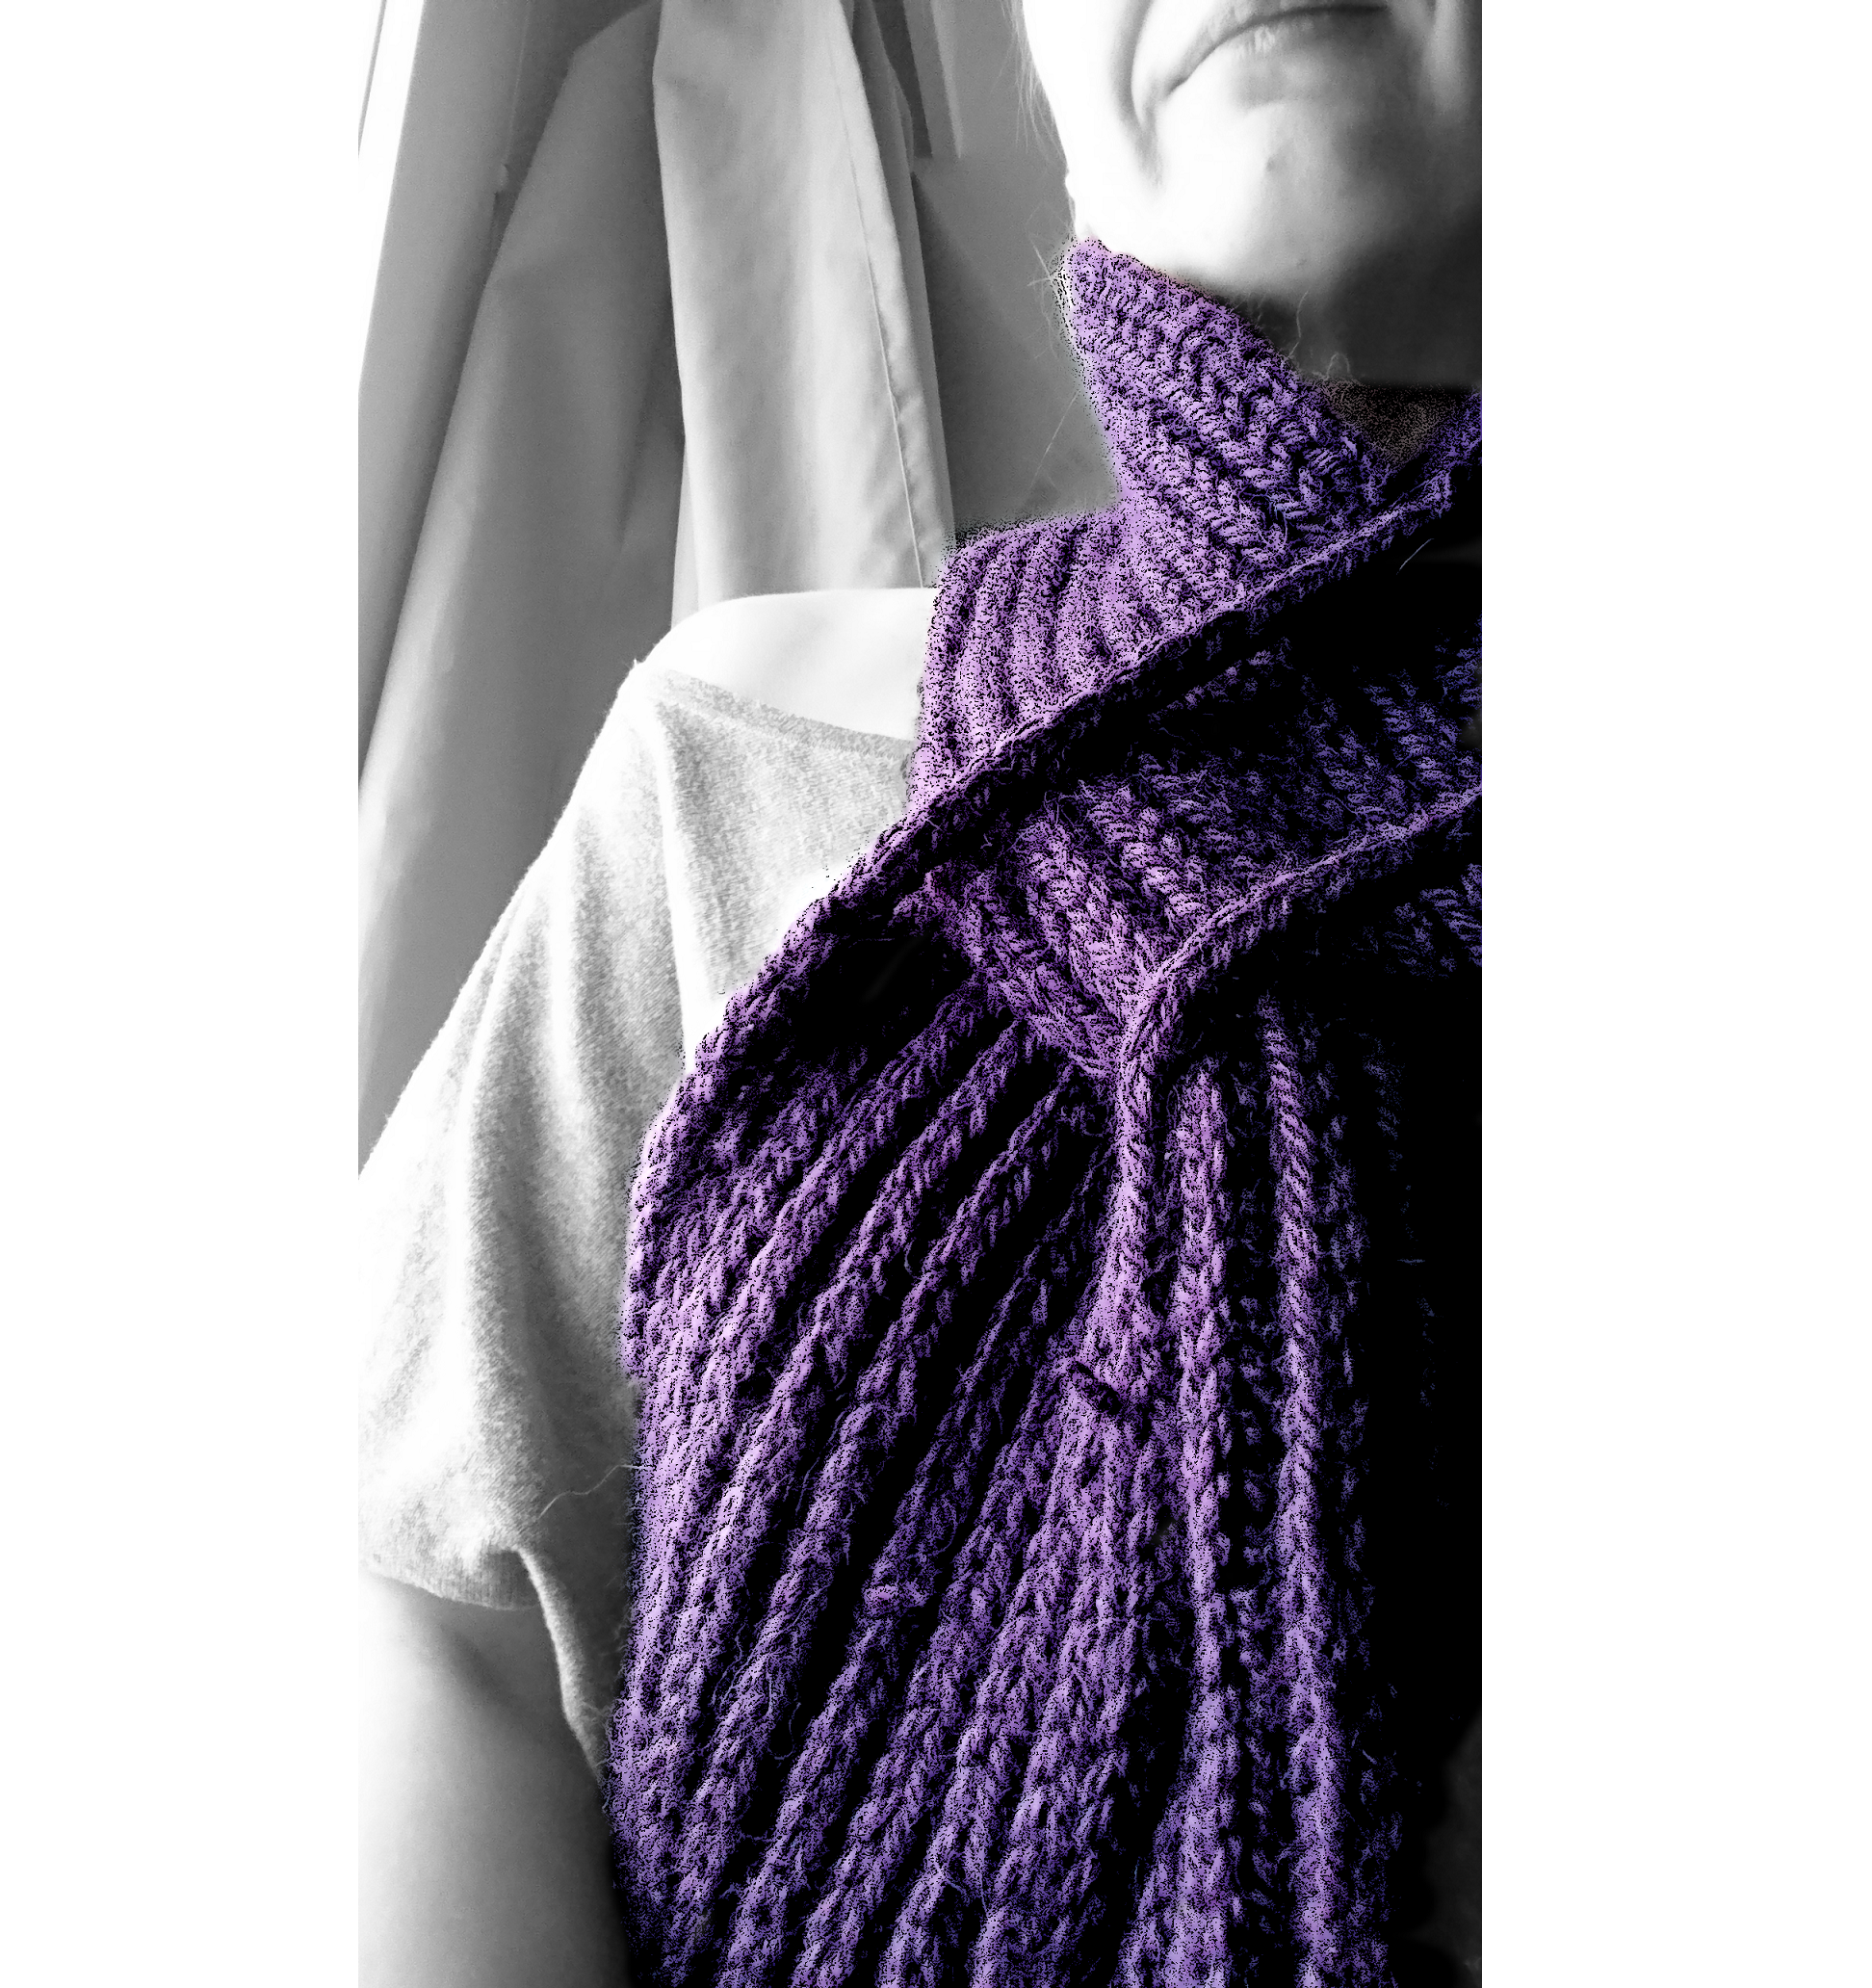 Ordning Scarf - Knitting pattern tutorial